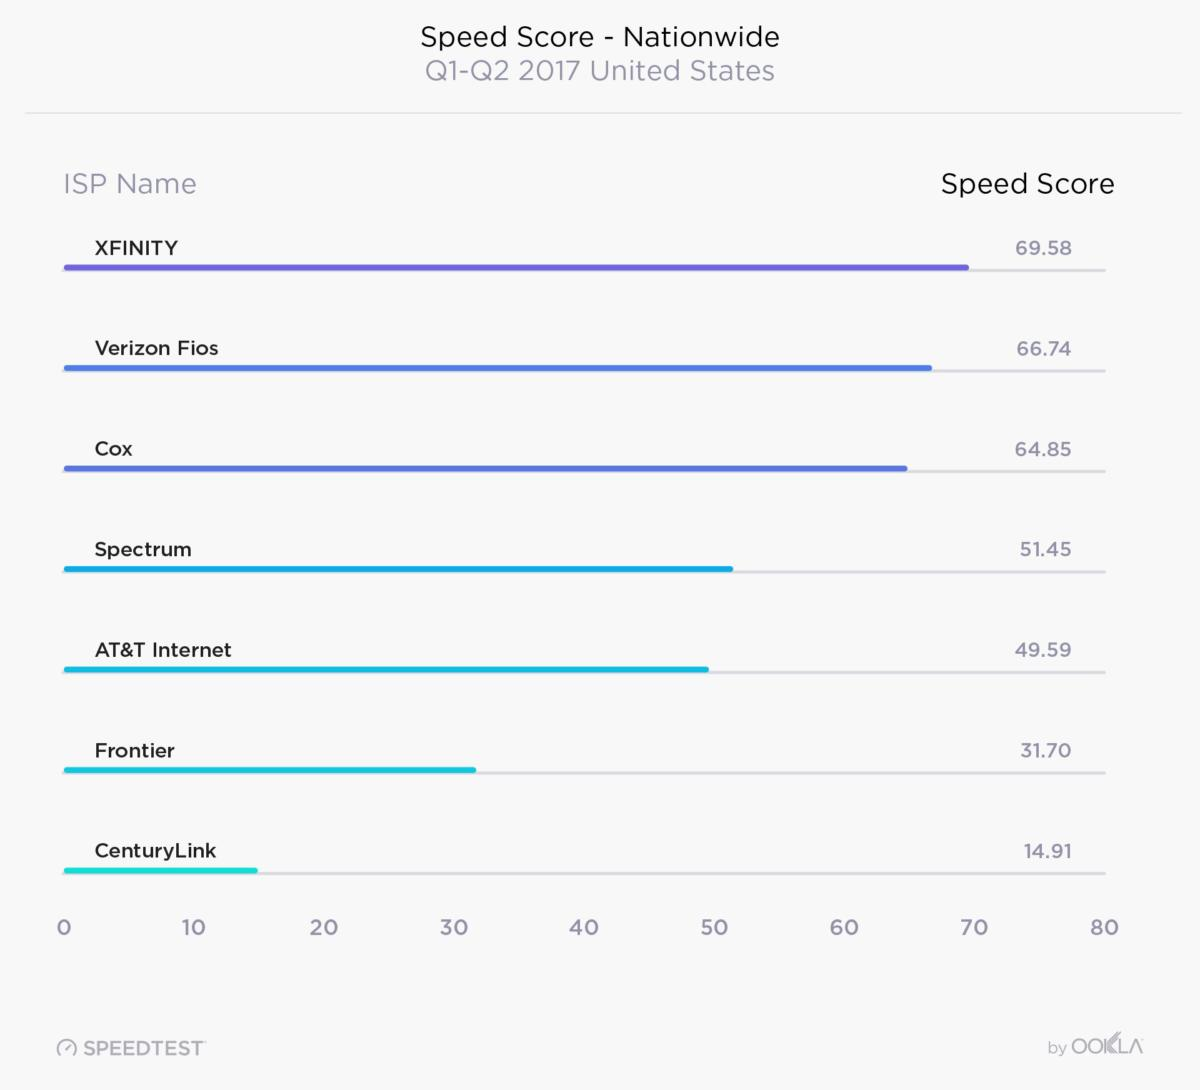 fastest broadband isps in united states